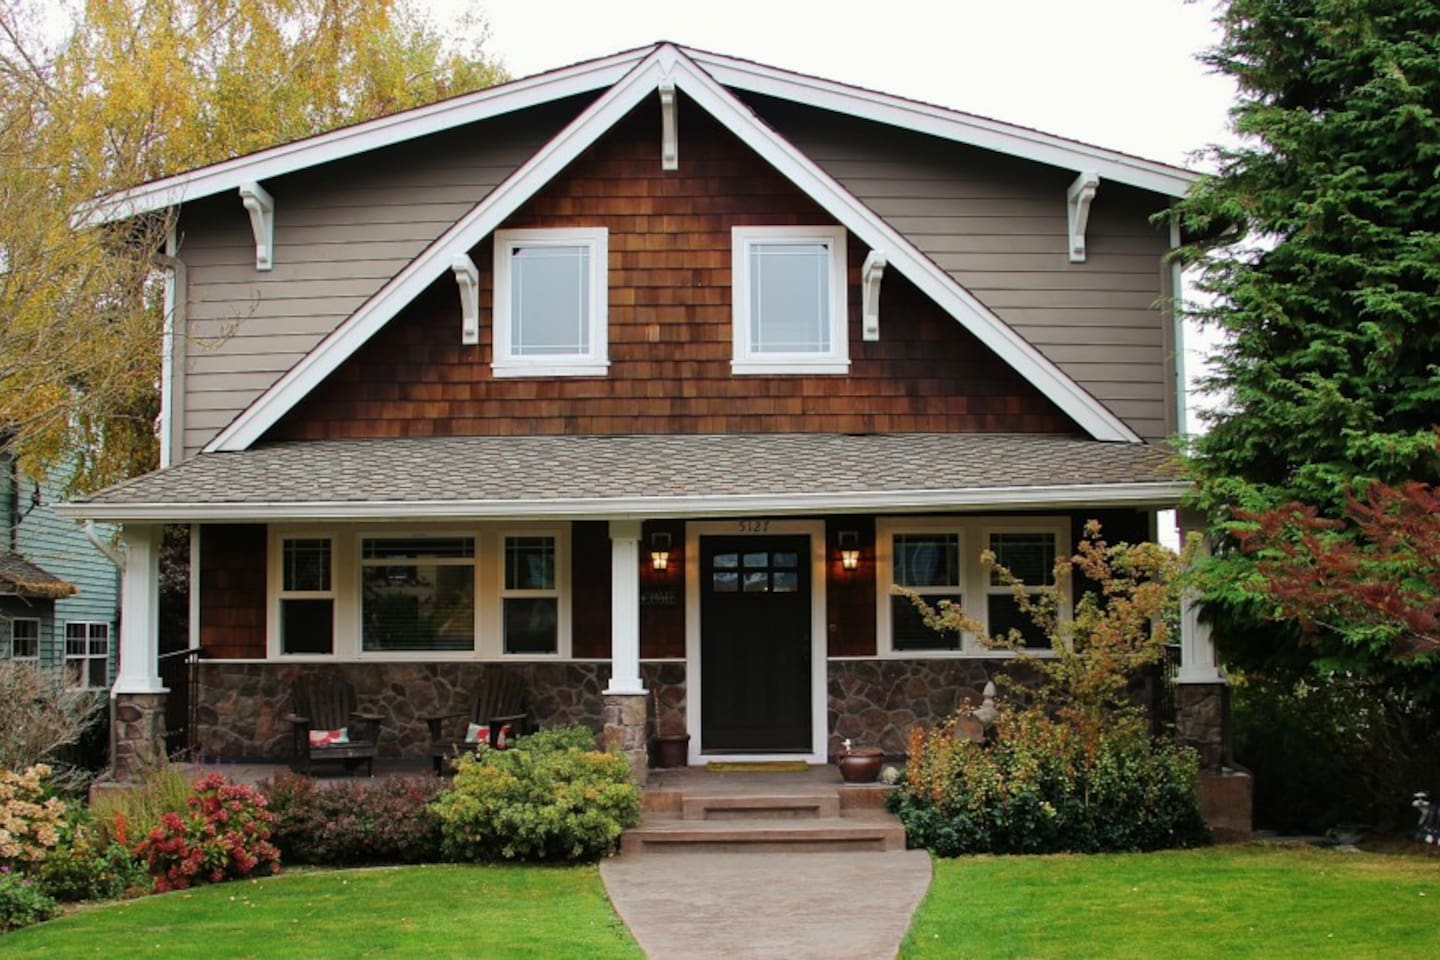 Custom Craftsman 3600 square foot home with 2 decks